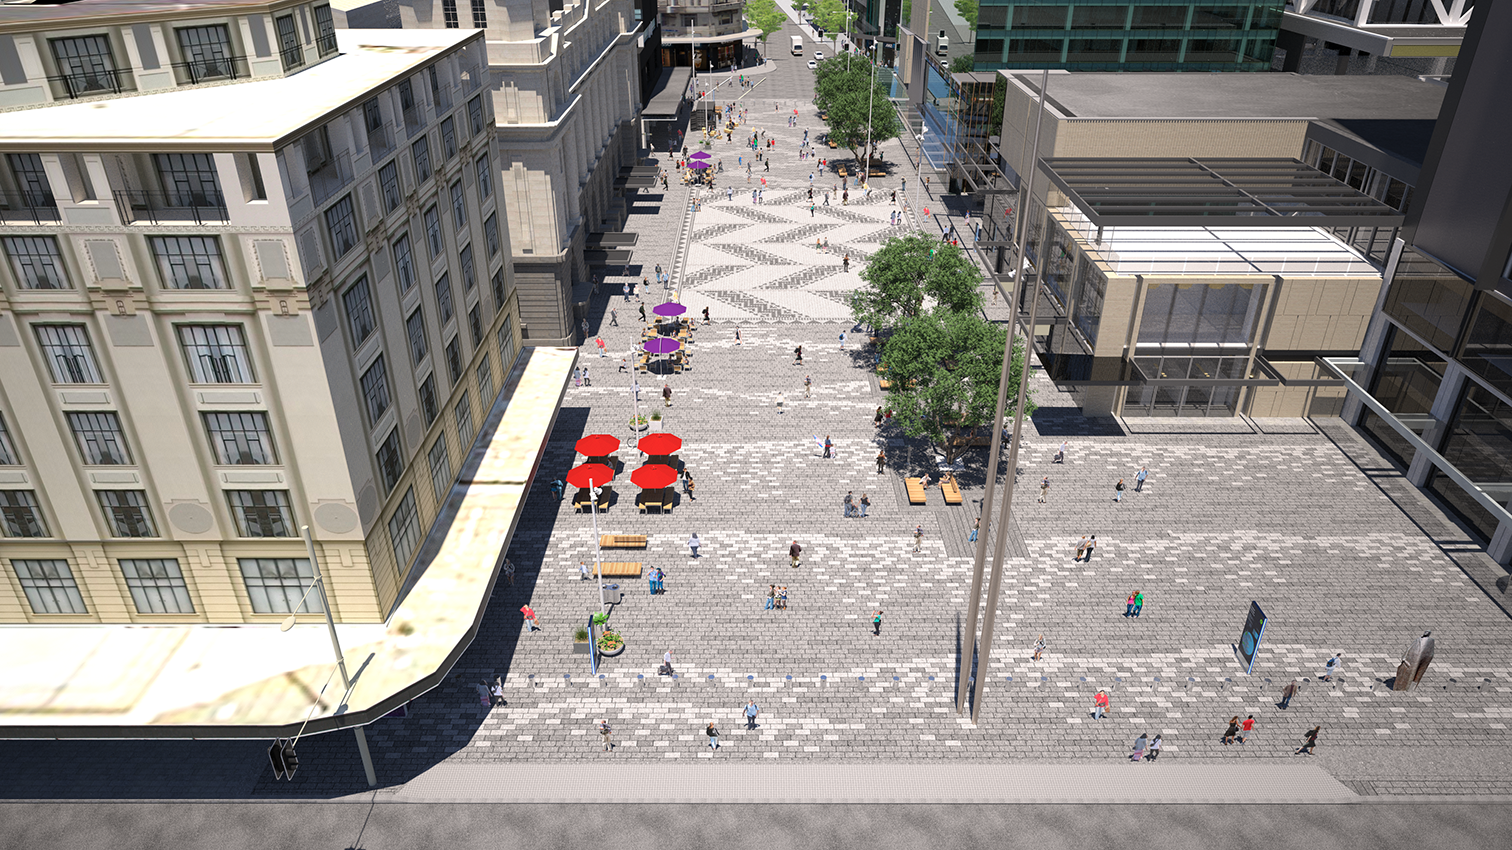 An elevated view looking south towards the city. A large art work/cultural marker is proposed at the northern end of the plaza.